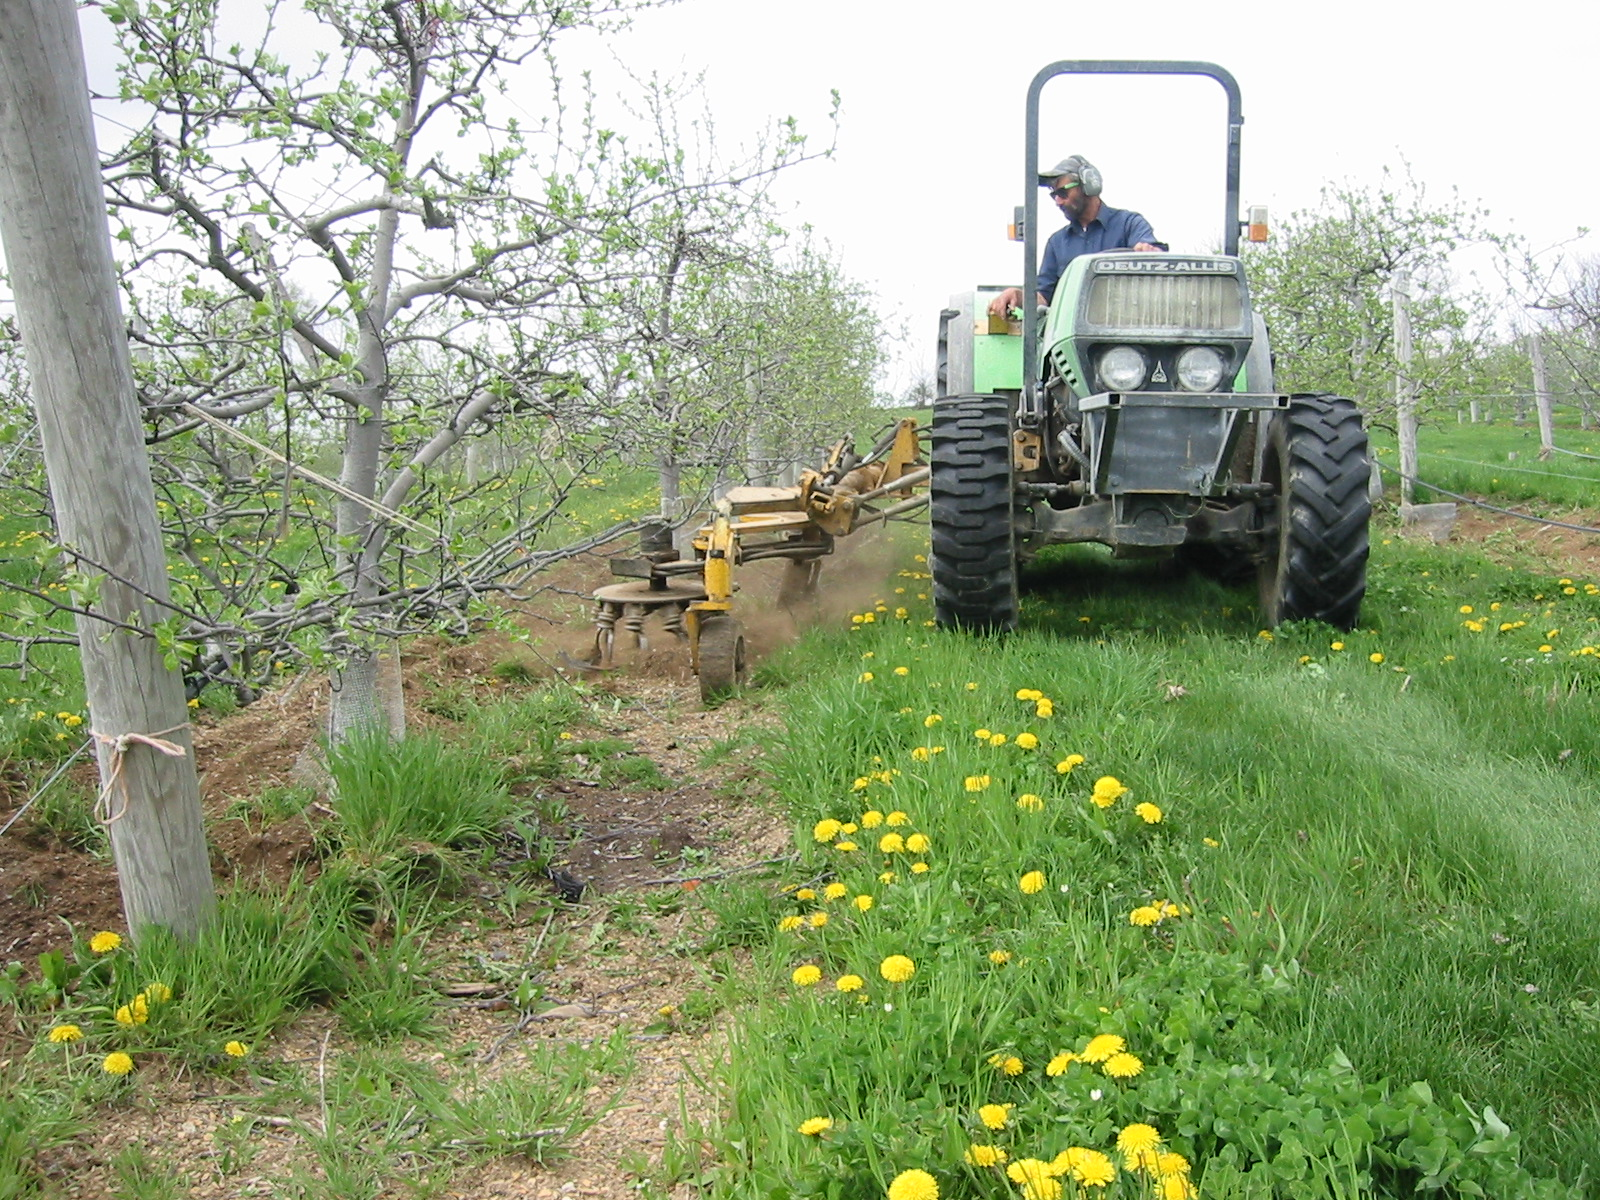 Apple orchardist uses a tractor implement to weed the orchard